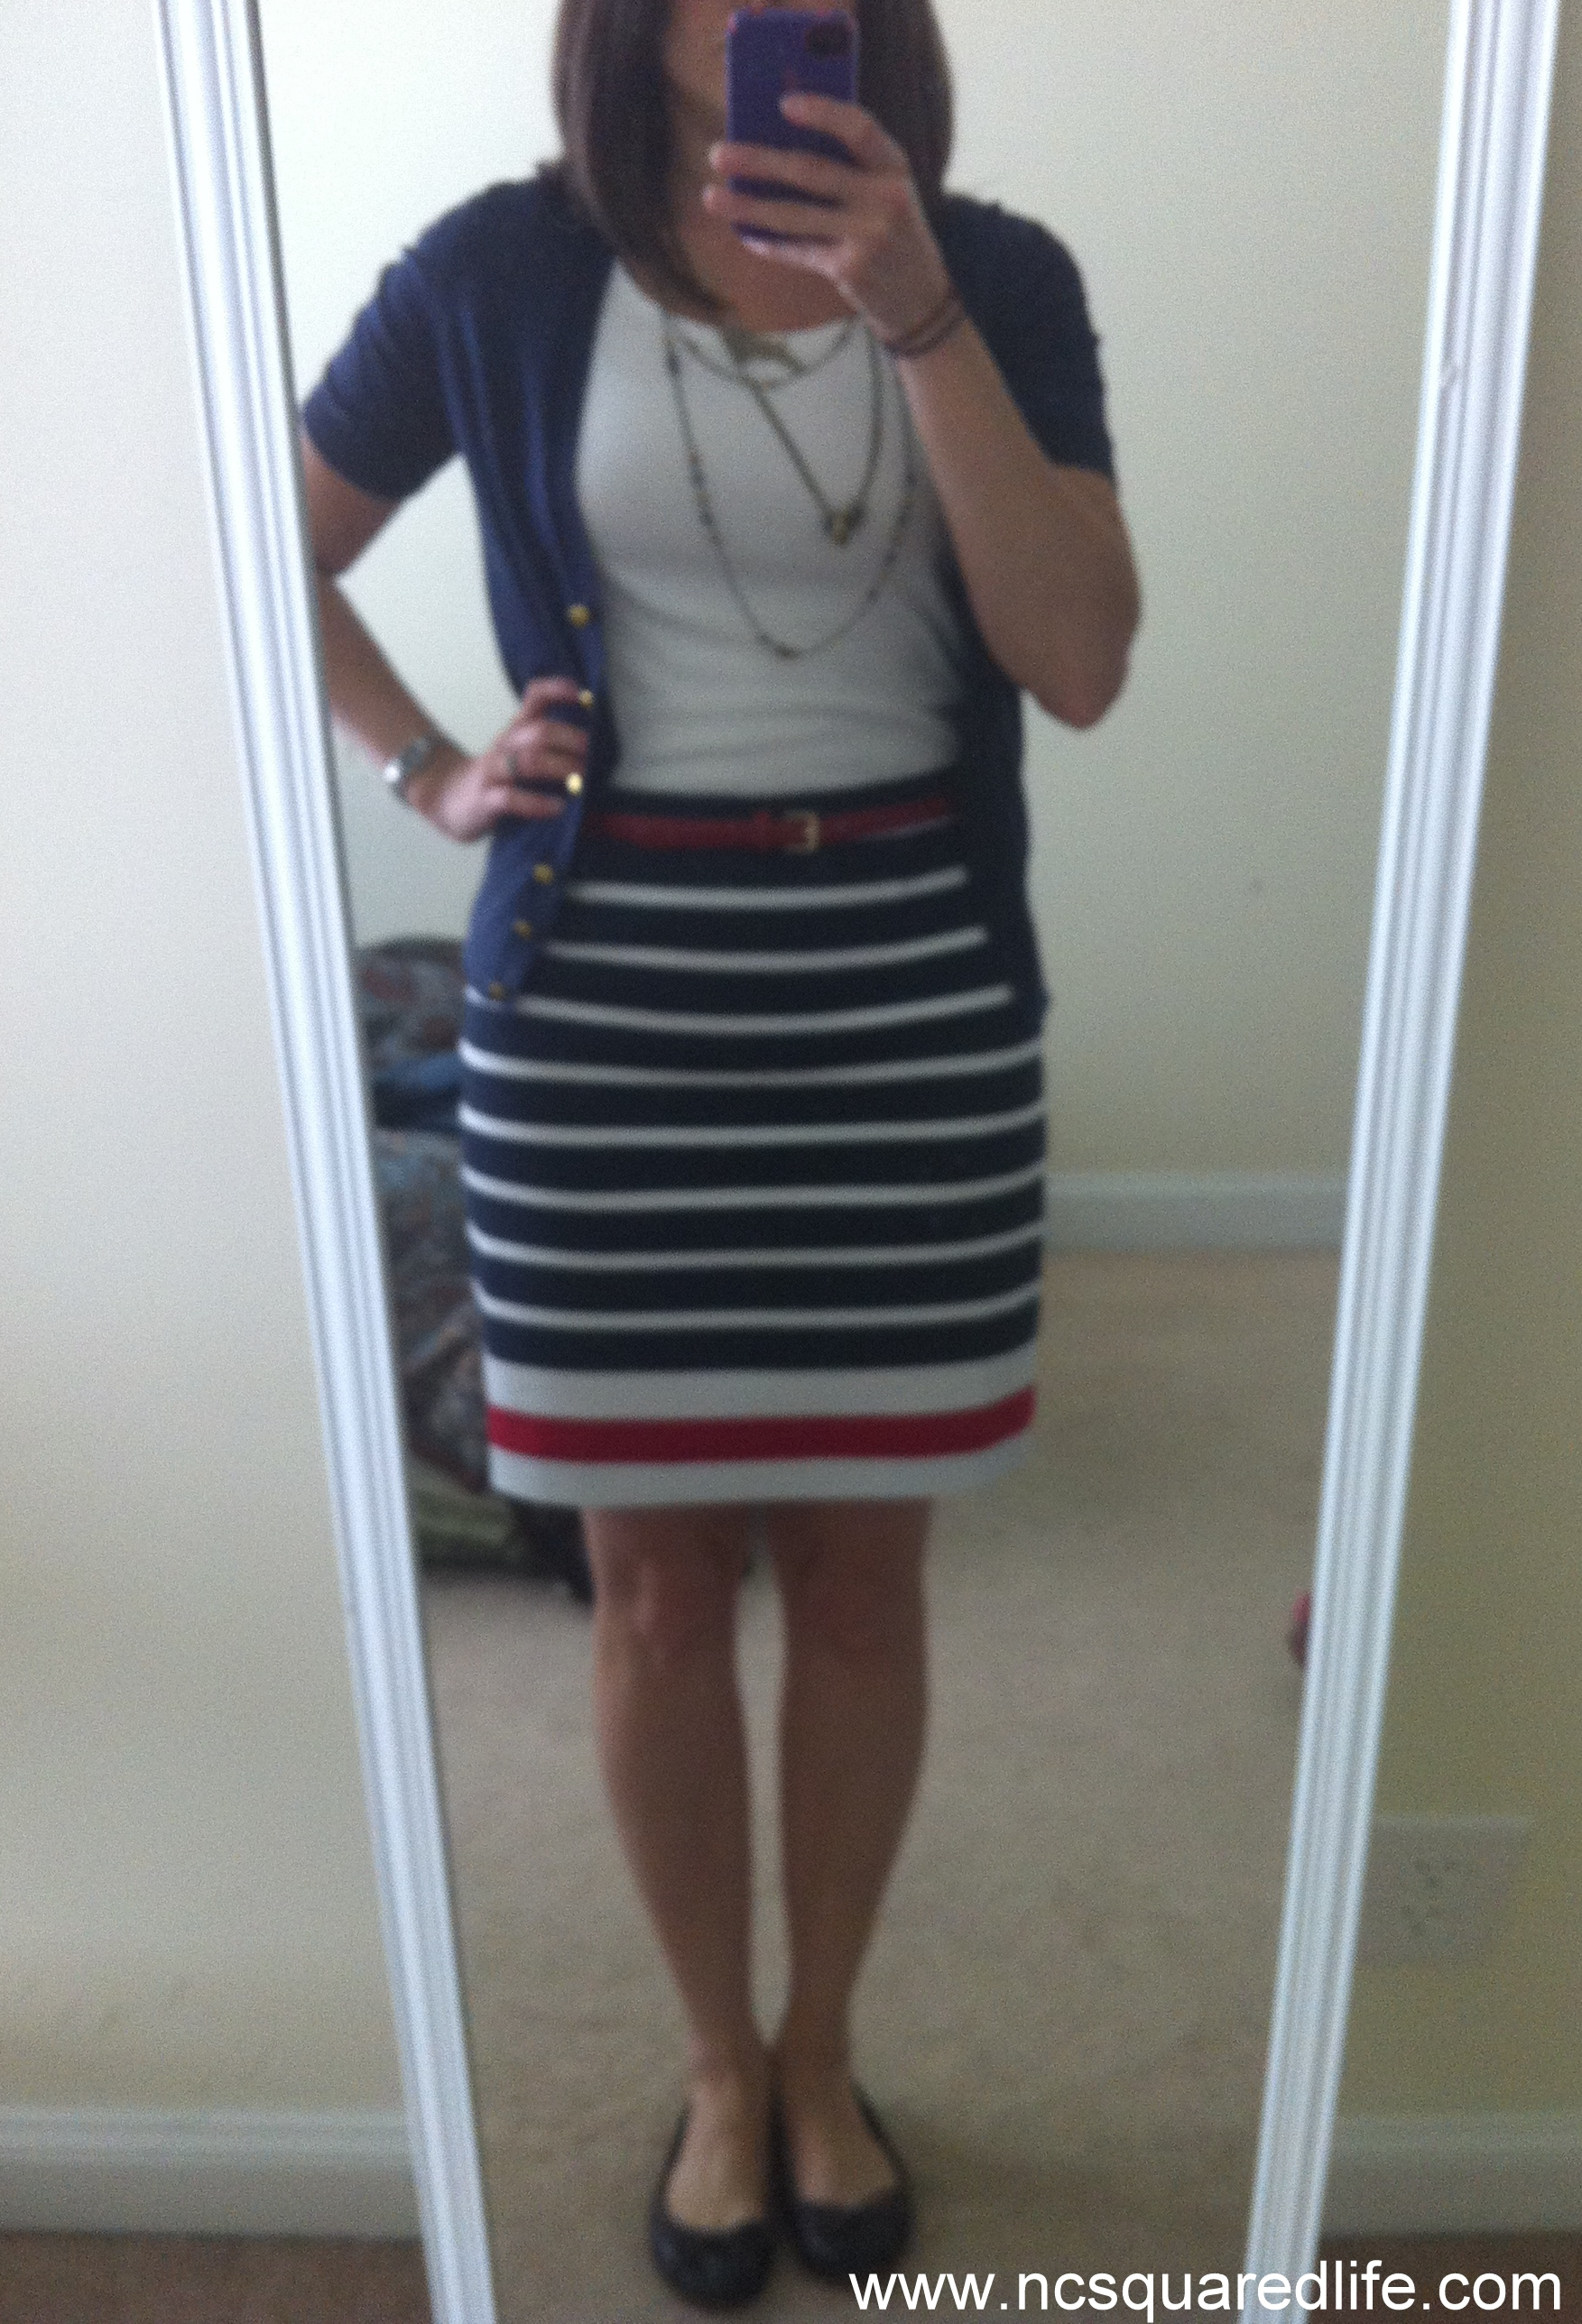 navy cardigan, navy + red stripe ponte pencil skirt | NCsquared Life